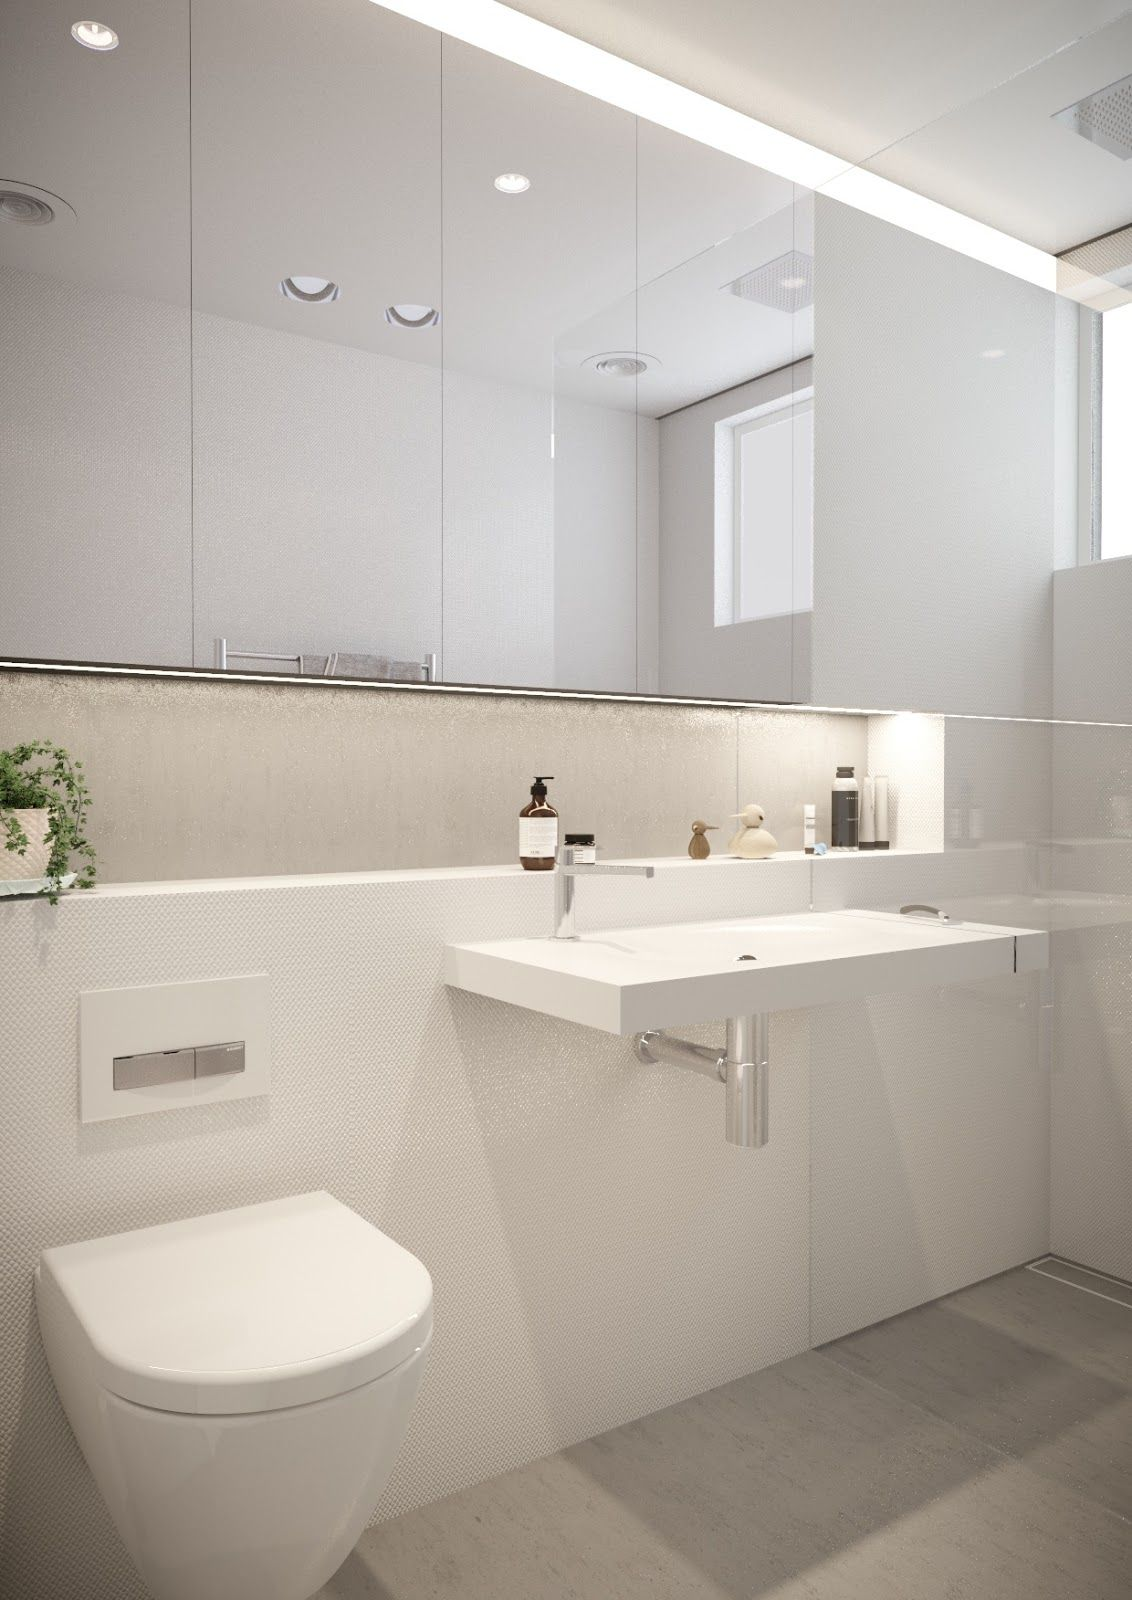 Kitchen And Bathroom Designers Impressive Modern Kitchen And Bathroom Design Solutionsaward Winning Design Review